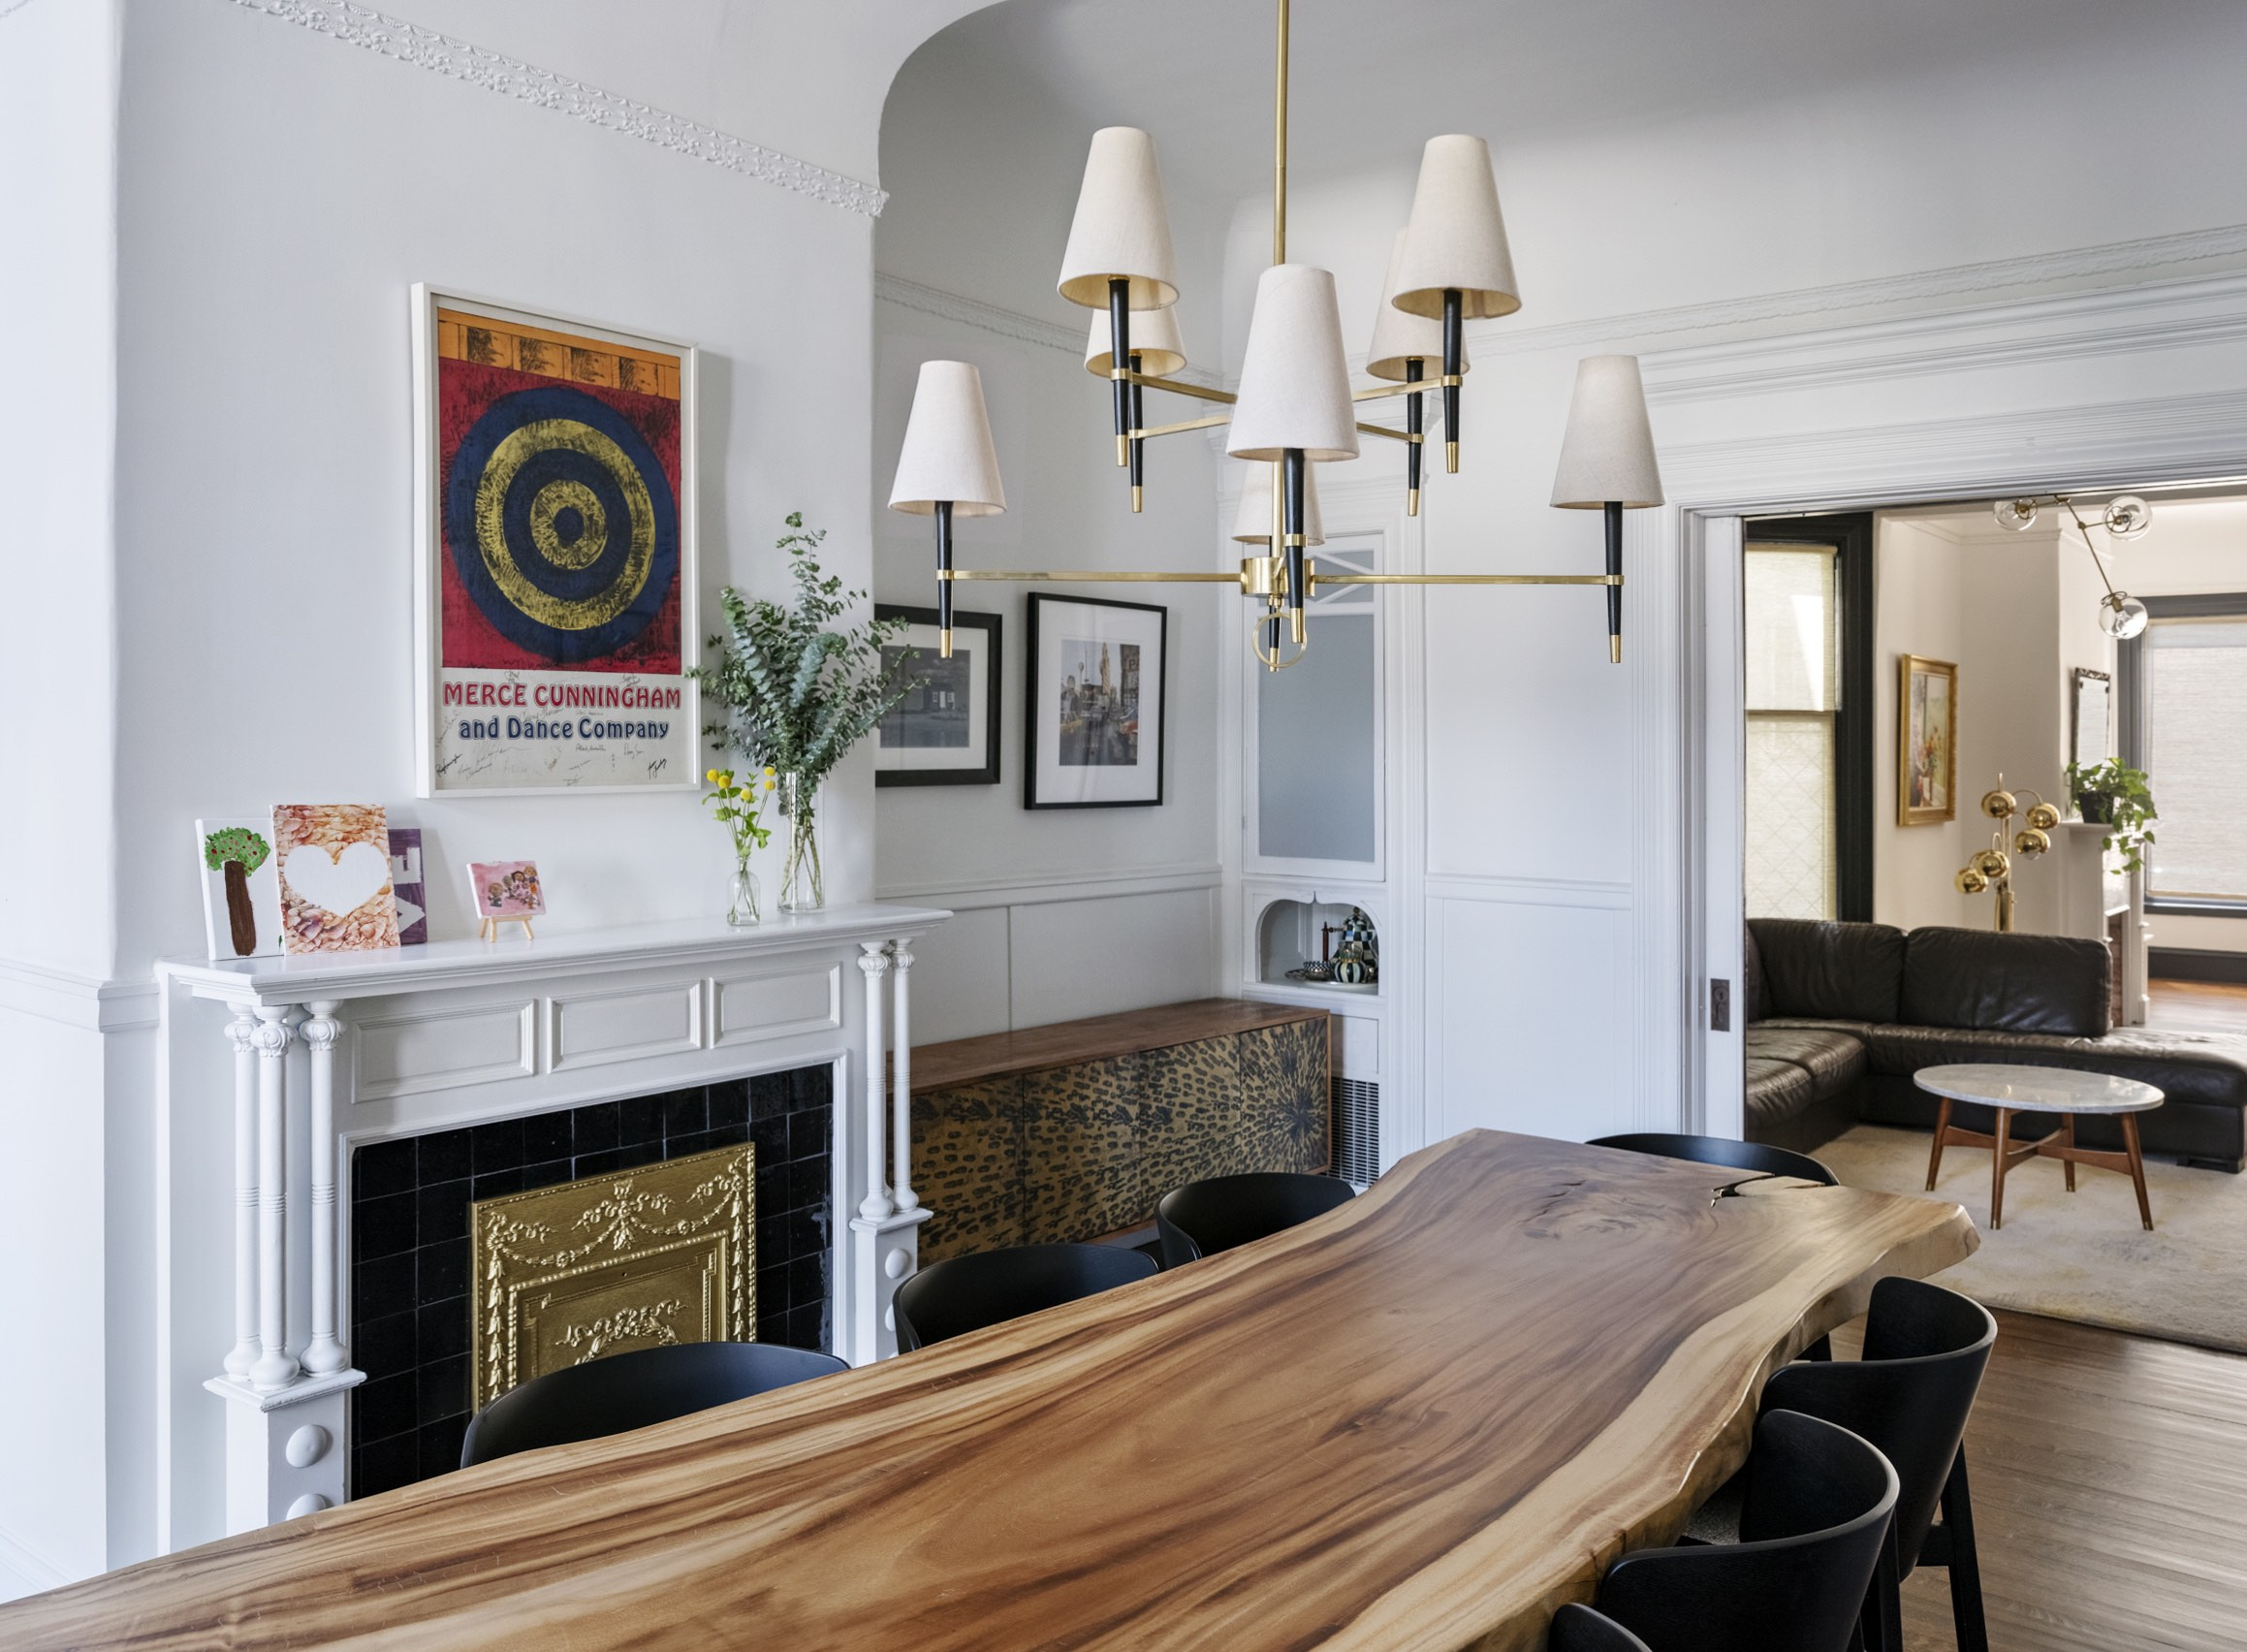 san francisco dining room remodel historic fireplace and live edge wood table.jpg